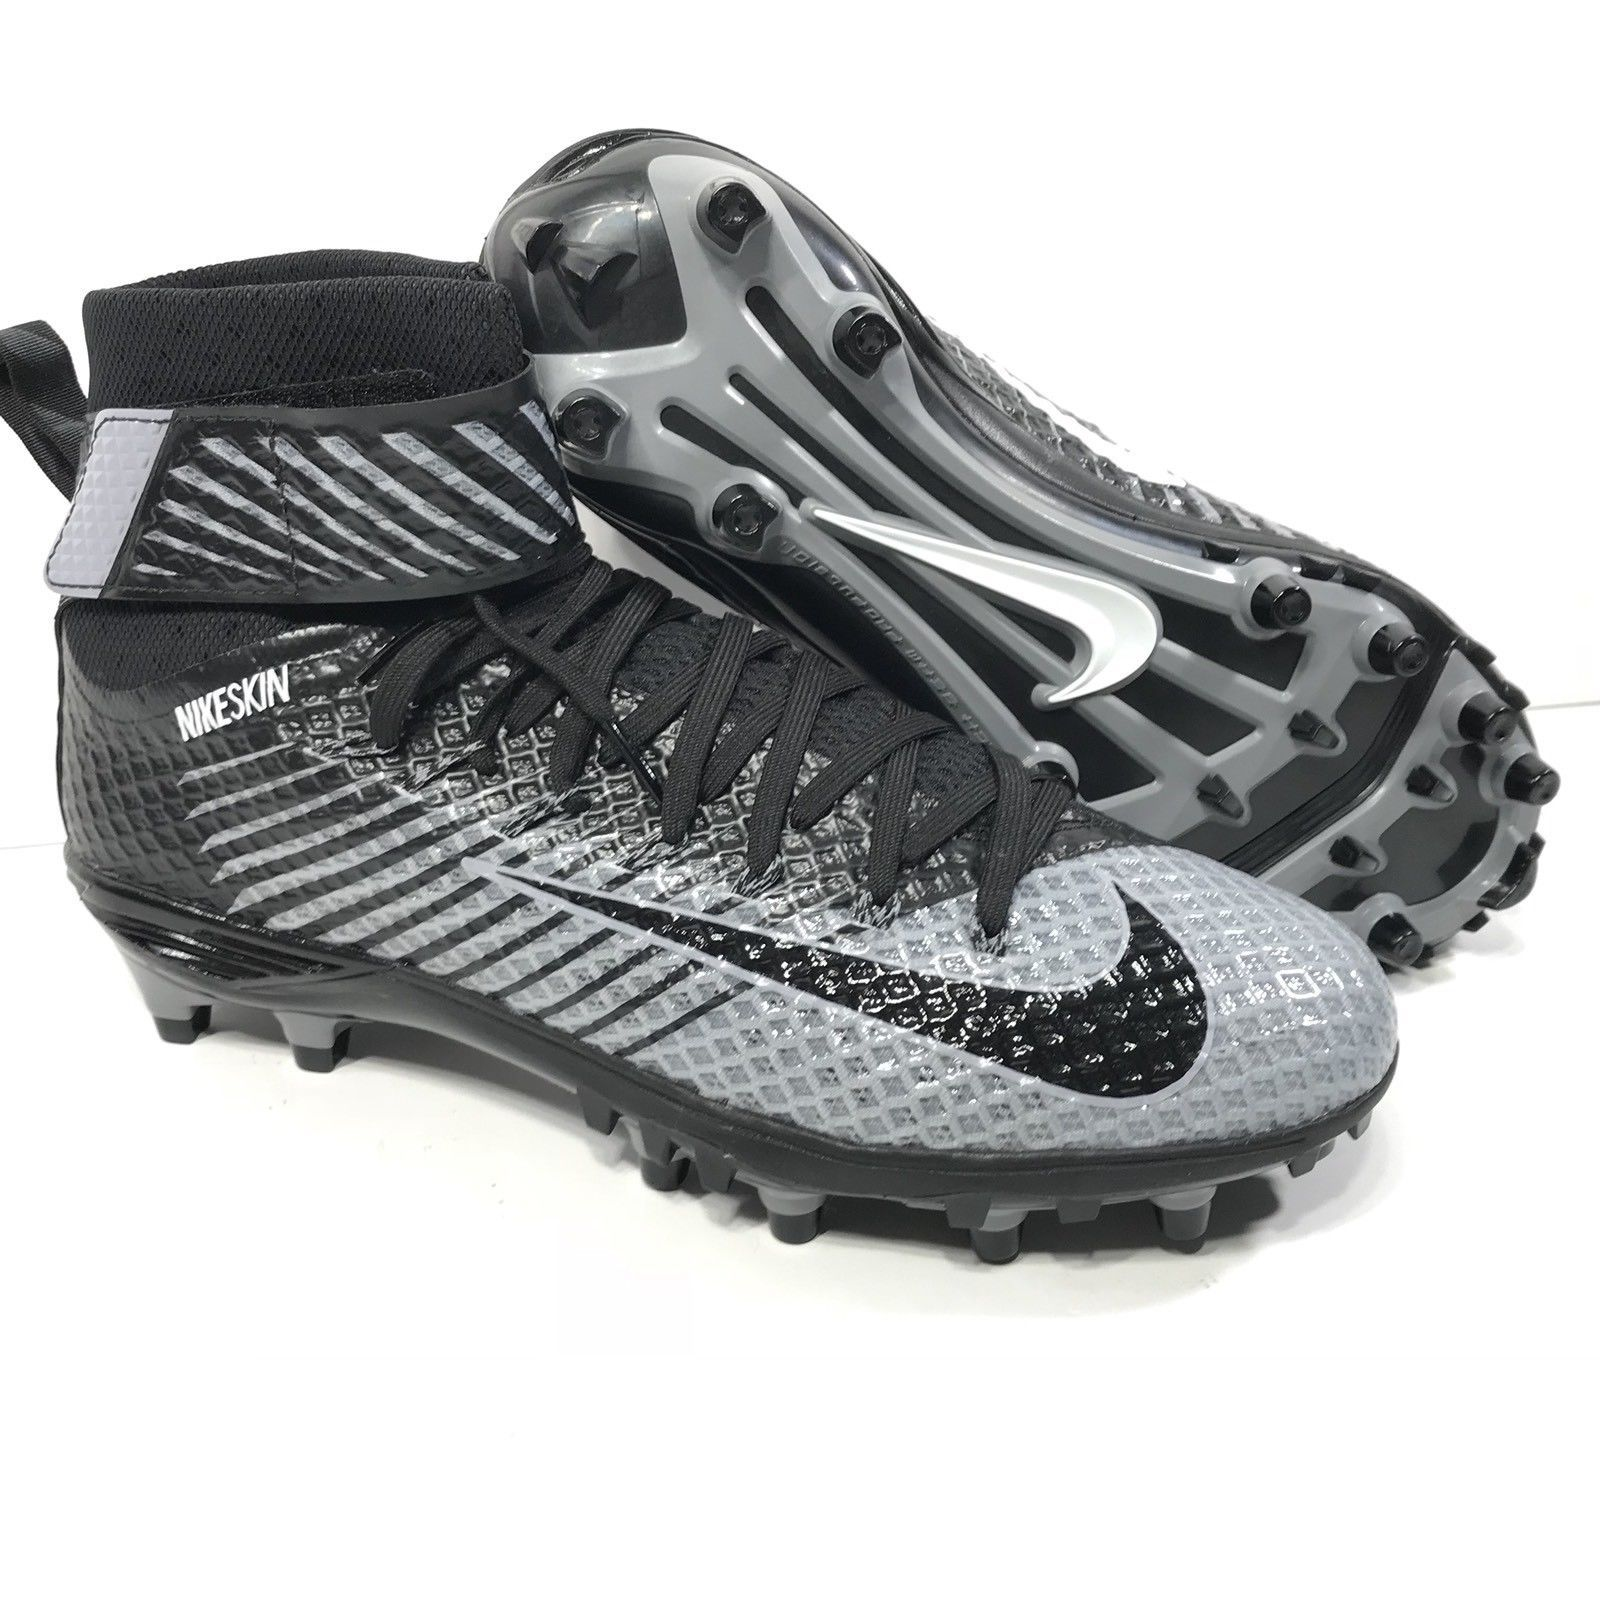 856f55a2703 S l1600. S l1600. Previous. Nike Mens Lunarbeast Elite TD Football Cleats  Black Gray 10.5 W0408. Nike ...